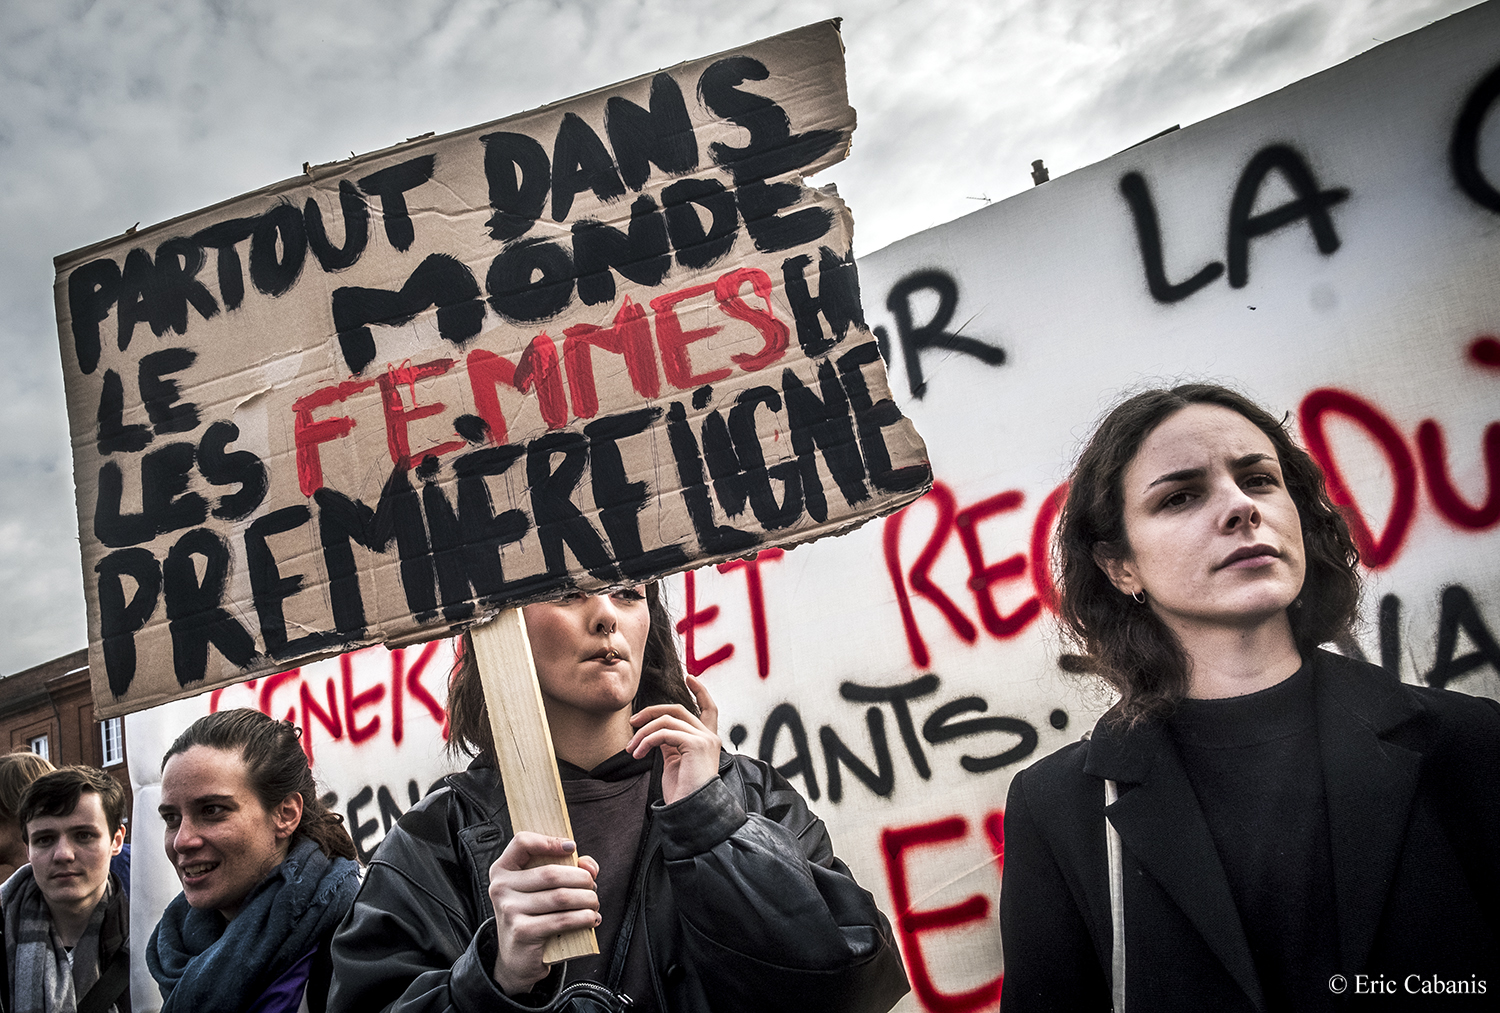 Le 5 décembre 2019 lors de la manifestation à Toulouse contre le projet de réforme du système de retraites des jeunes femmes portent des pancartes On December 5, 2019 during the demonstration in Toulouse against the proposed reform of the pension system young women carry signs Photojournalism Streetphotography Eric Cabanis